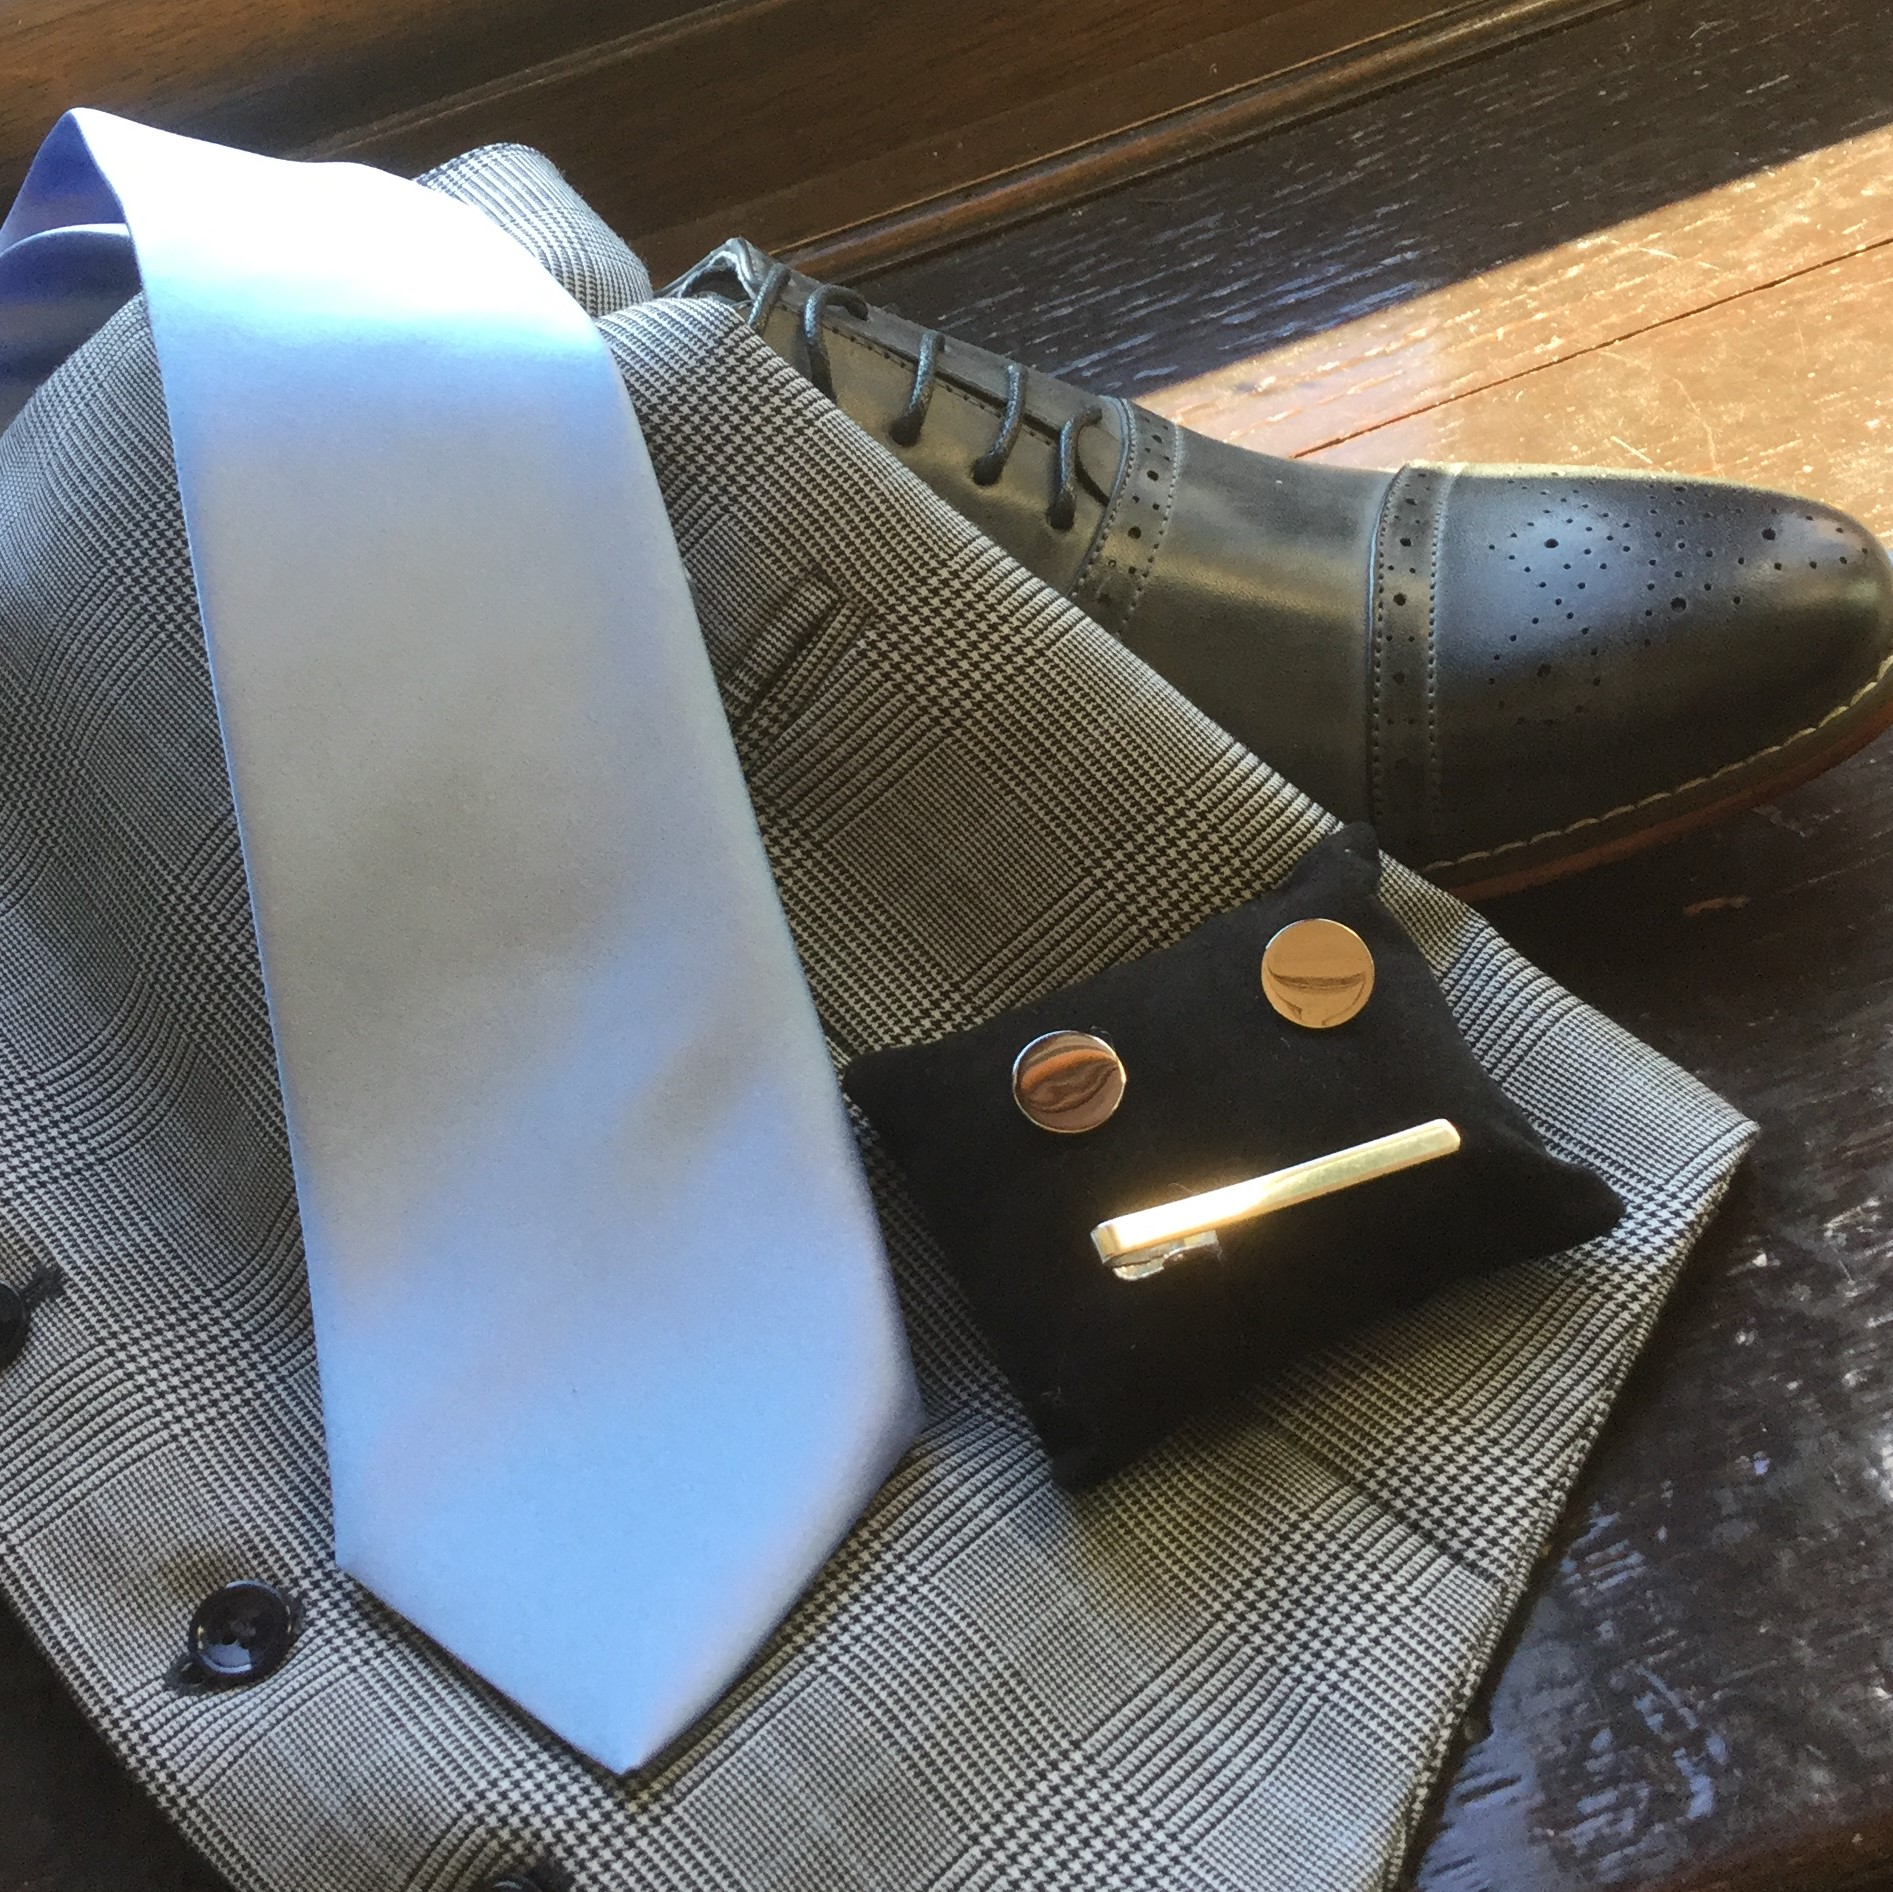 Silver Cufflinks, Tie Bar and Grey Waistcoat, Tie and Brogue Shoes